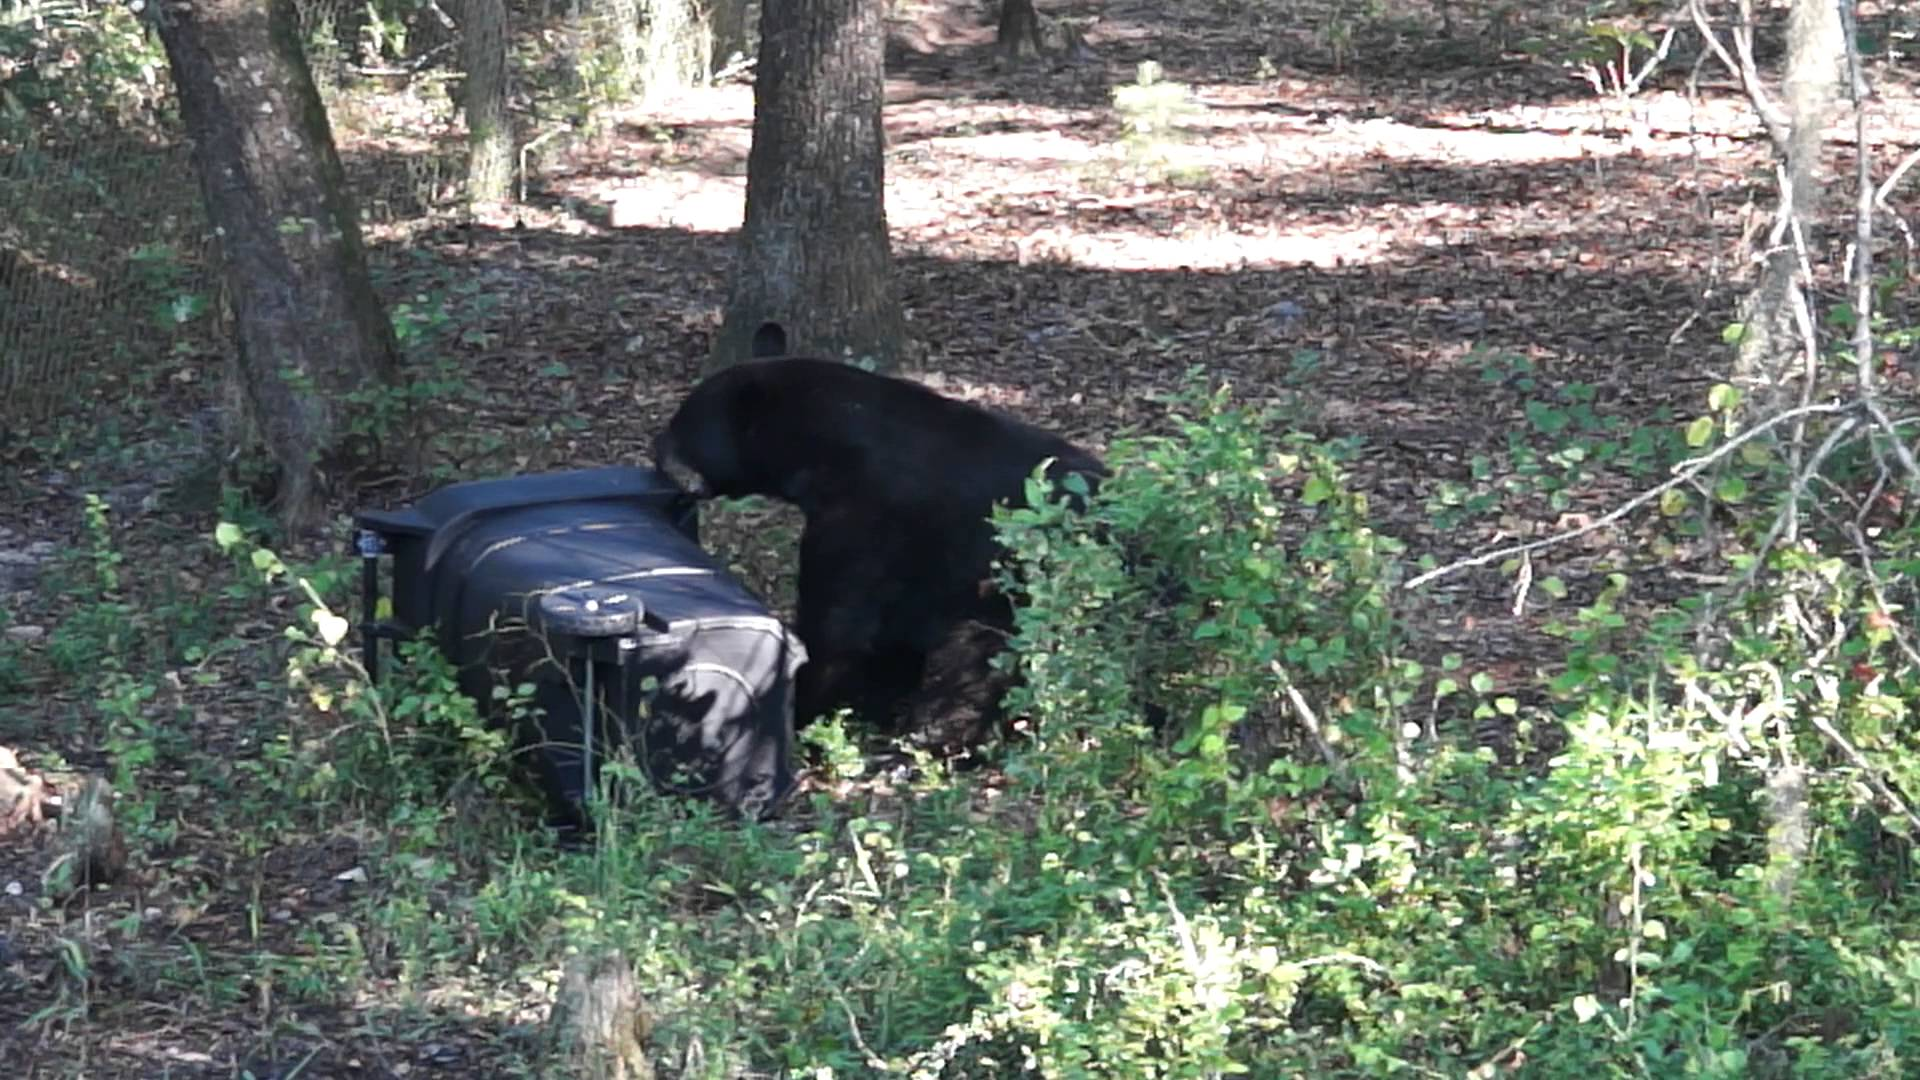 Black bear with overturned garbage can